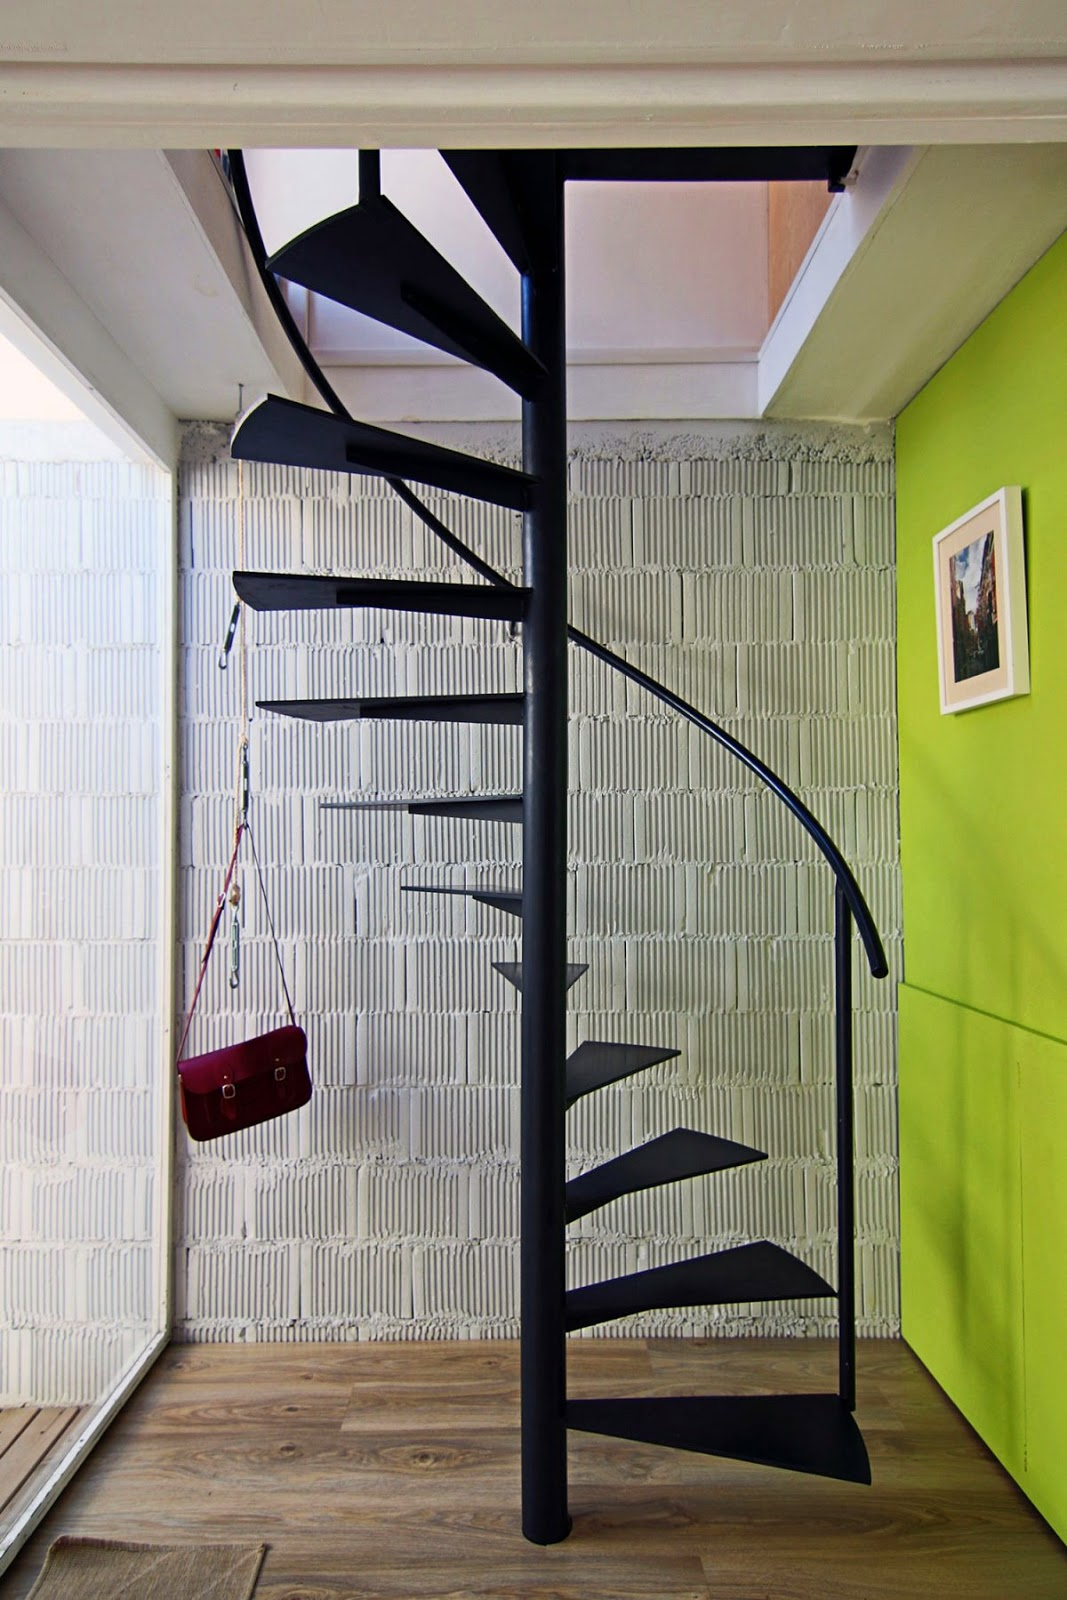 Staircase Designs 9 Interesting Interior Stairs Design Ideas With Low Budget